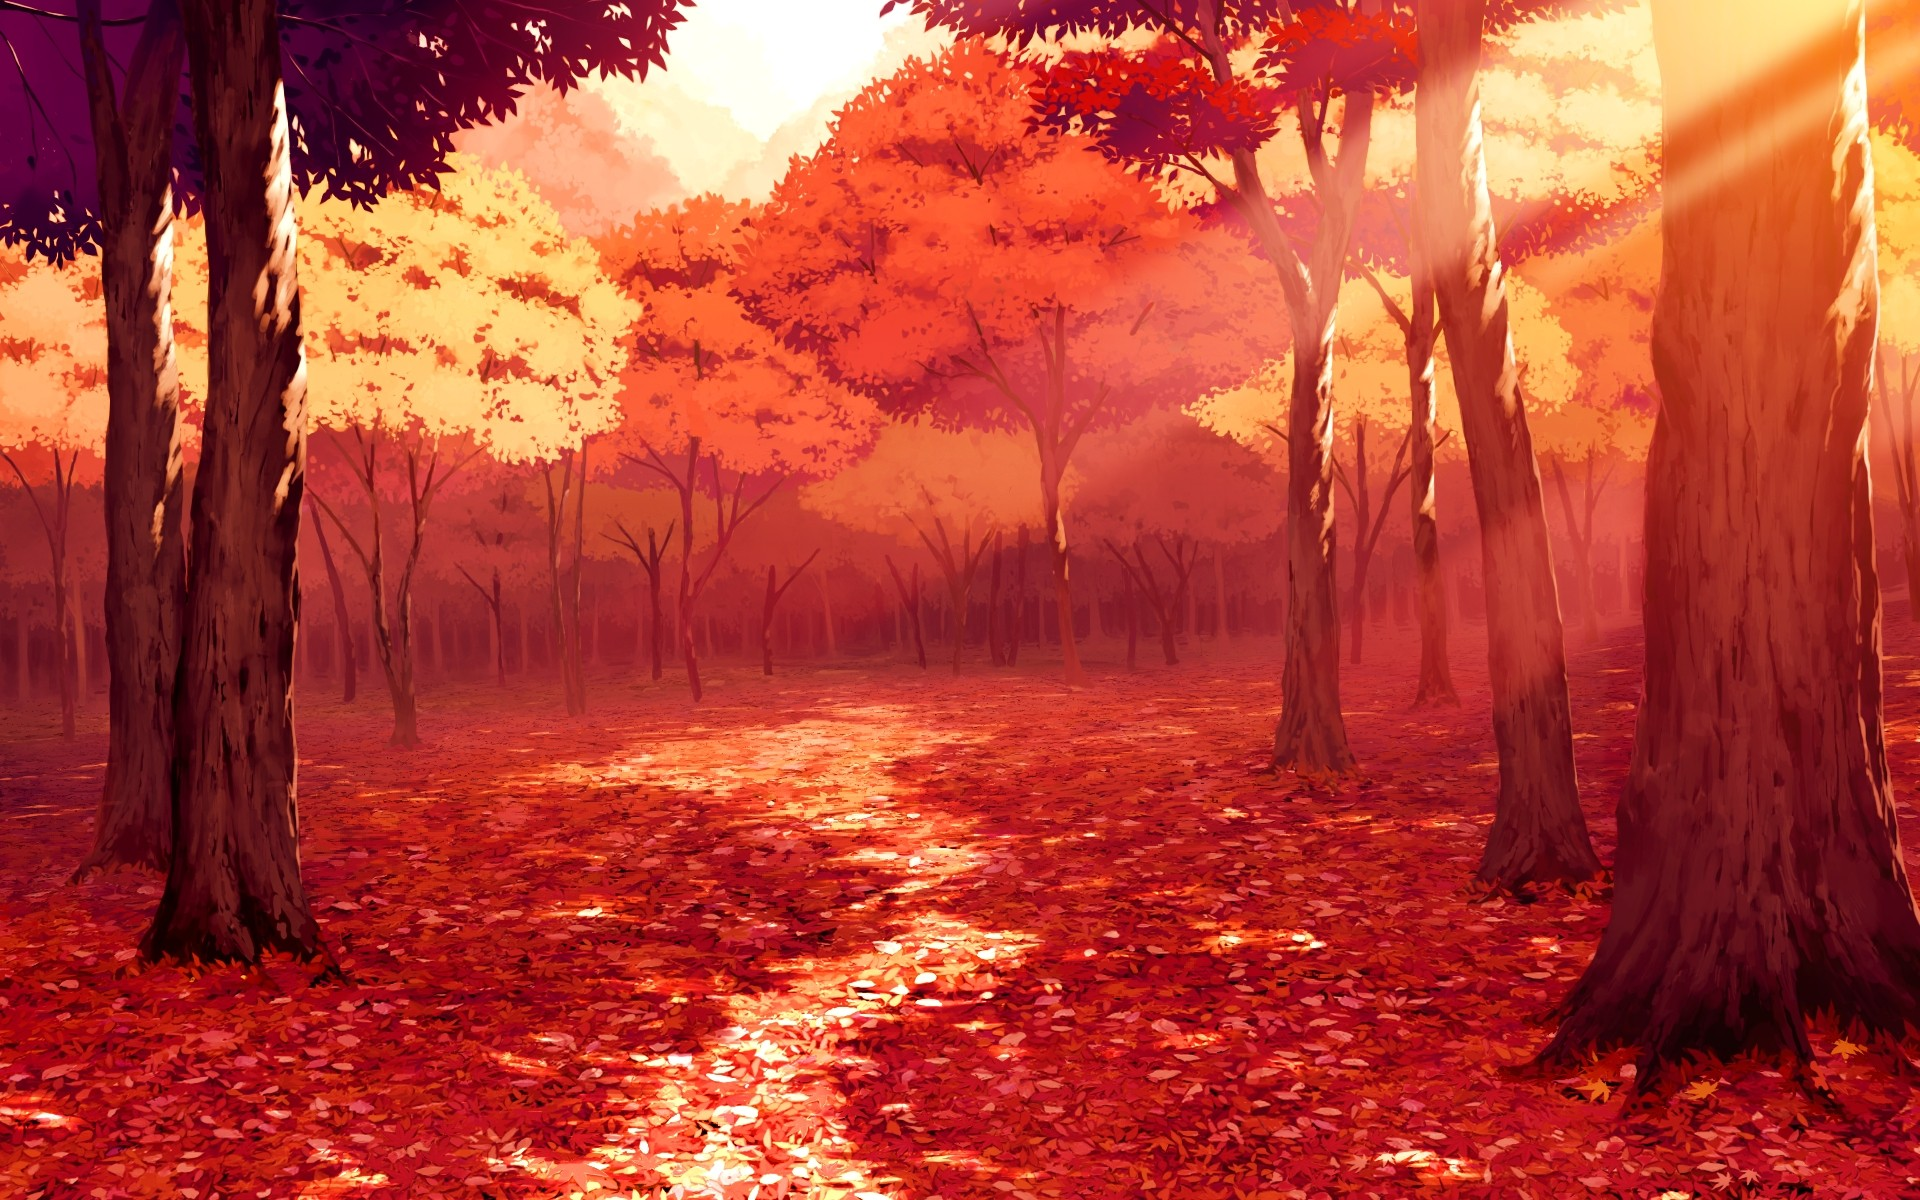 Anime autumn scenery